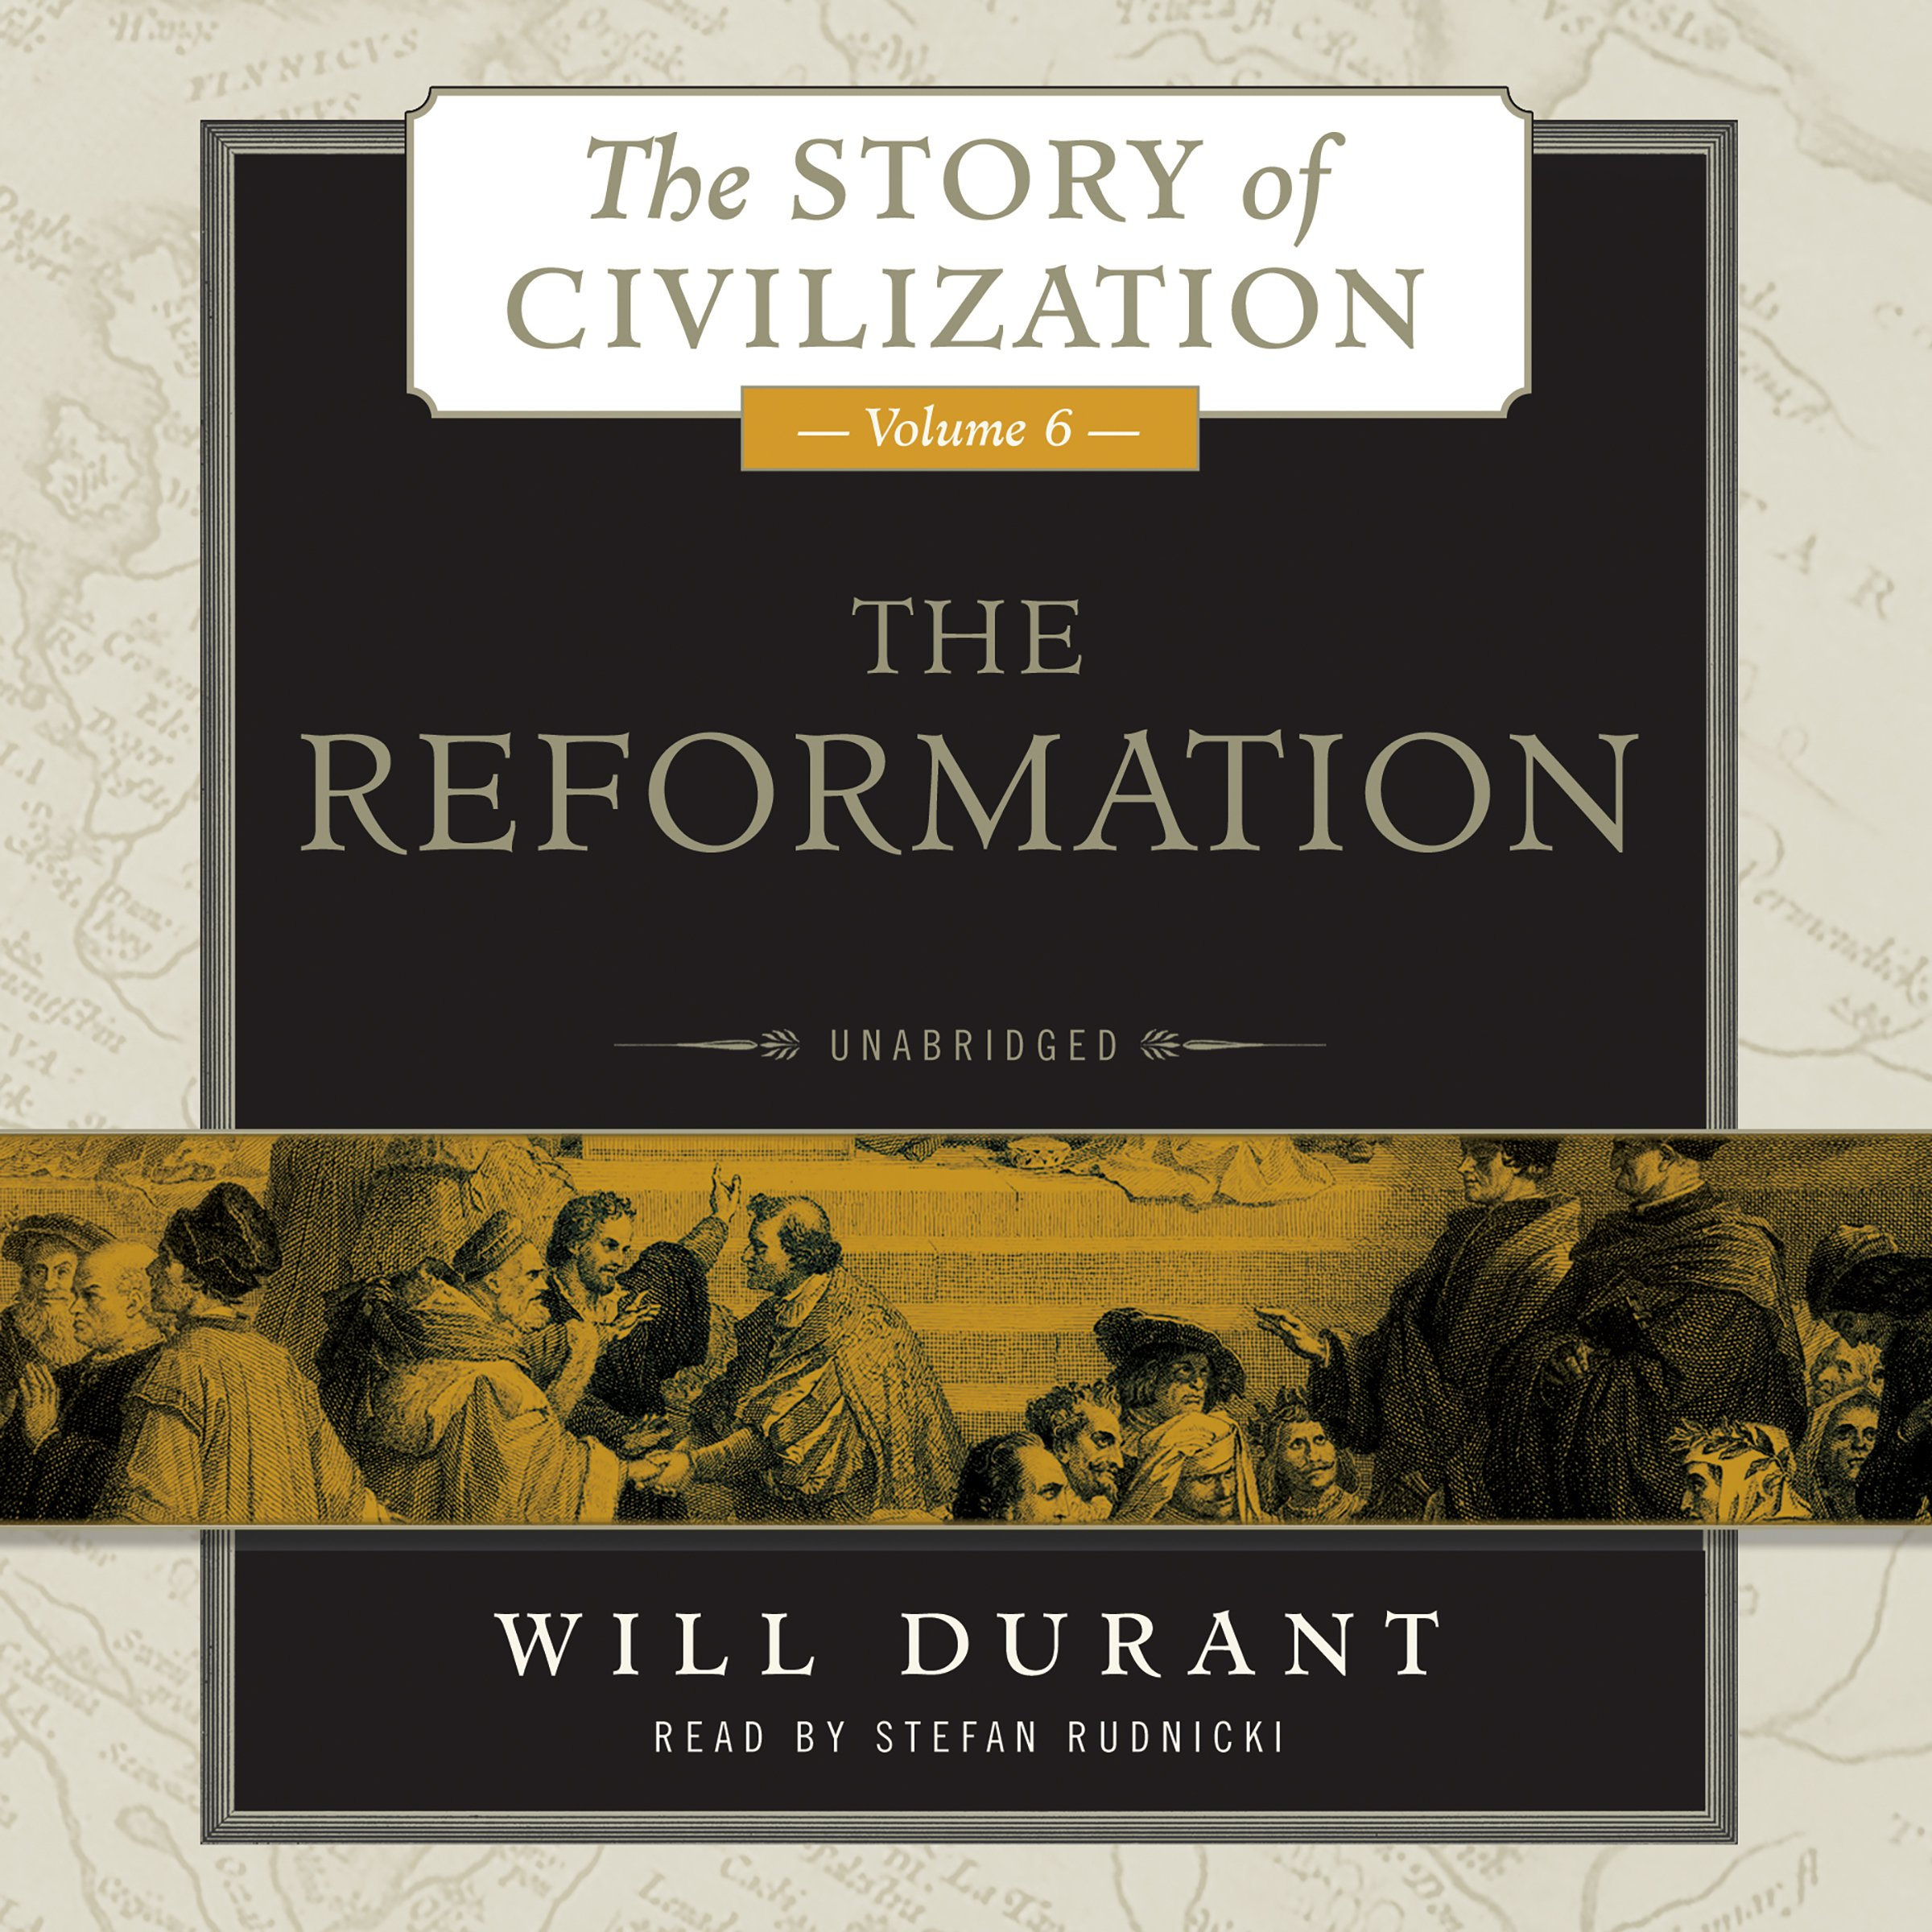 The reformation a history of european civilization from wycliffe the reformation a history of european civilization from wycliffe to calvin 1300 1564 story of civilization series volume 6 the story of fandeluxe Image collections